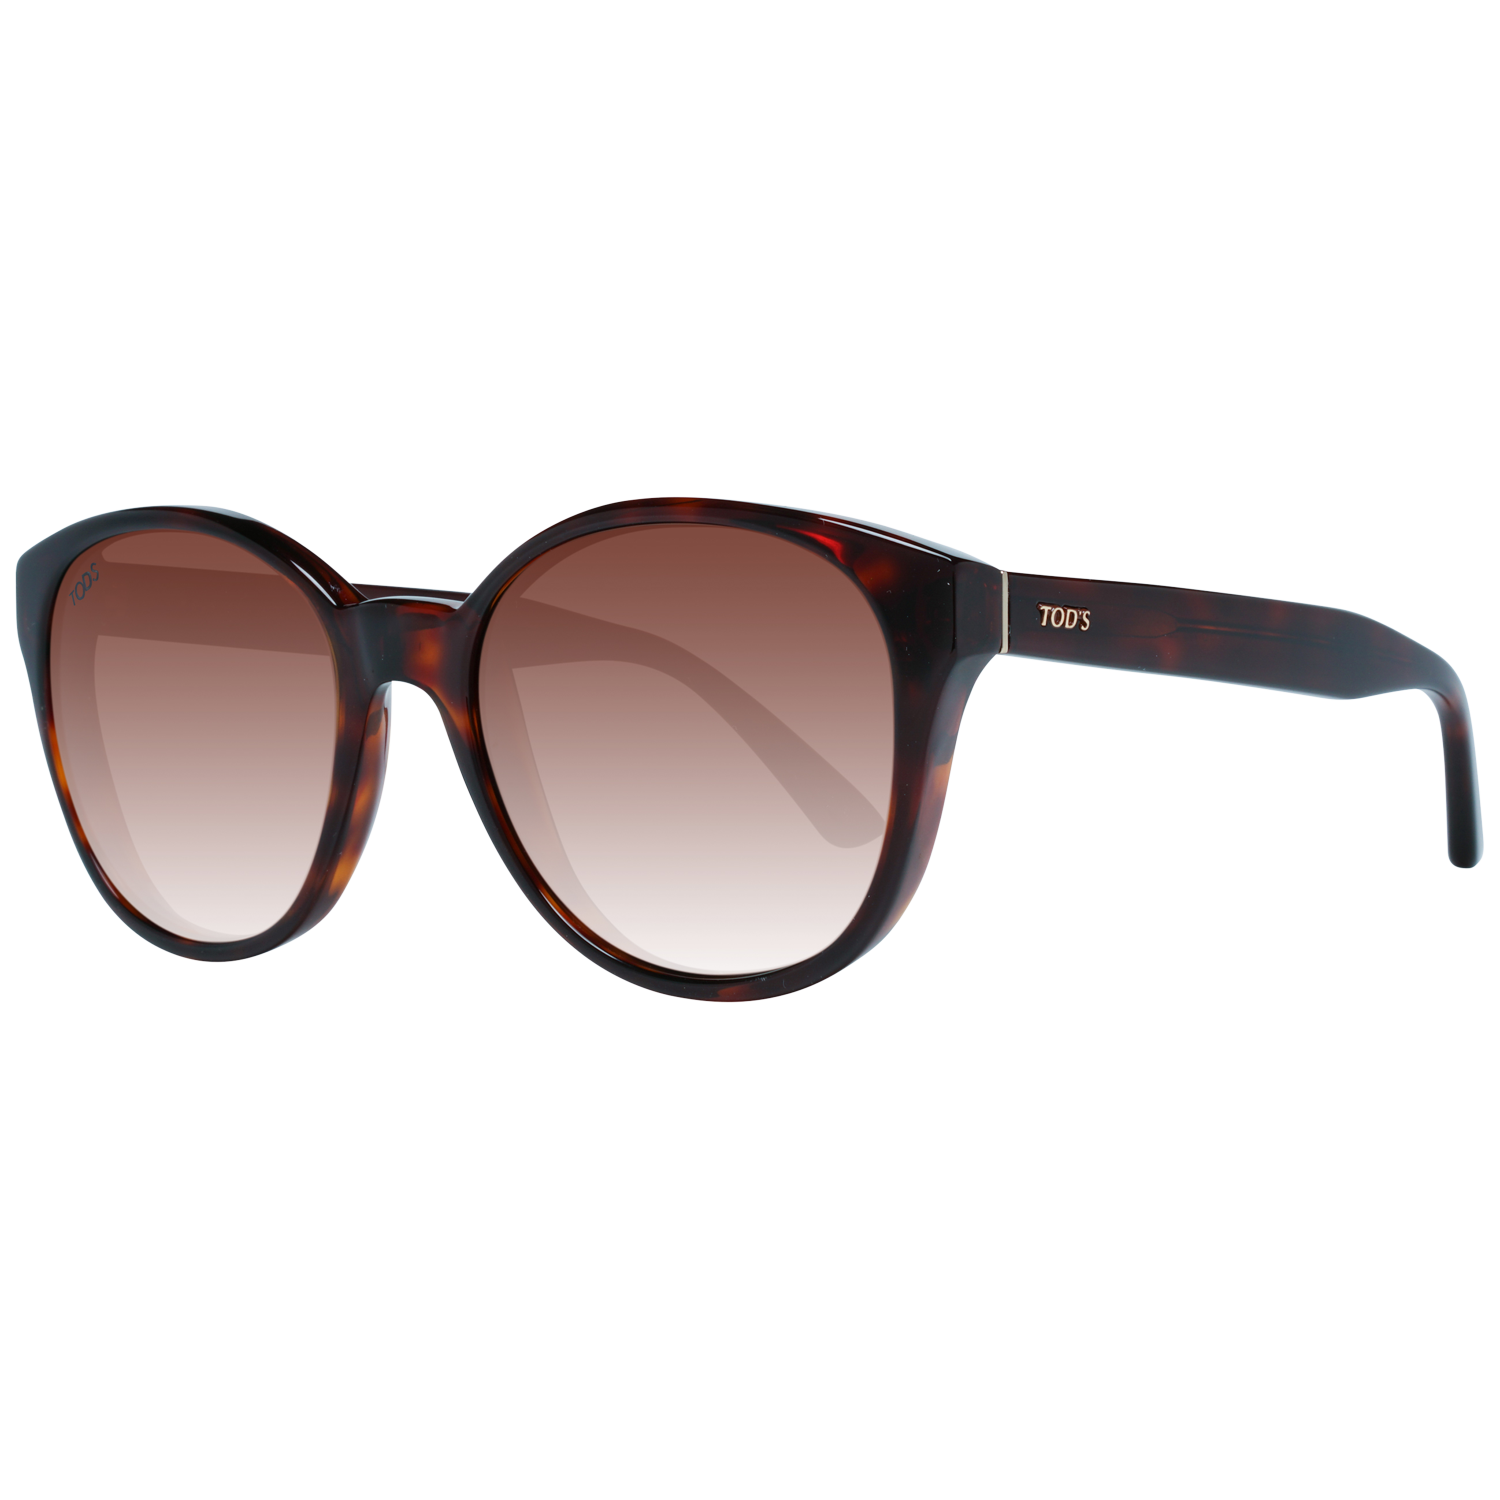 Tods Sunglasses TO0146 52F 53 Brown